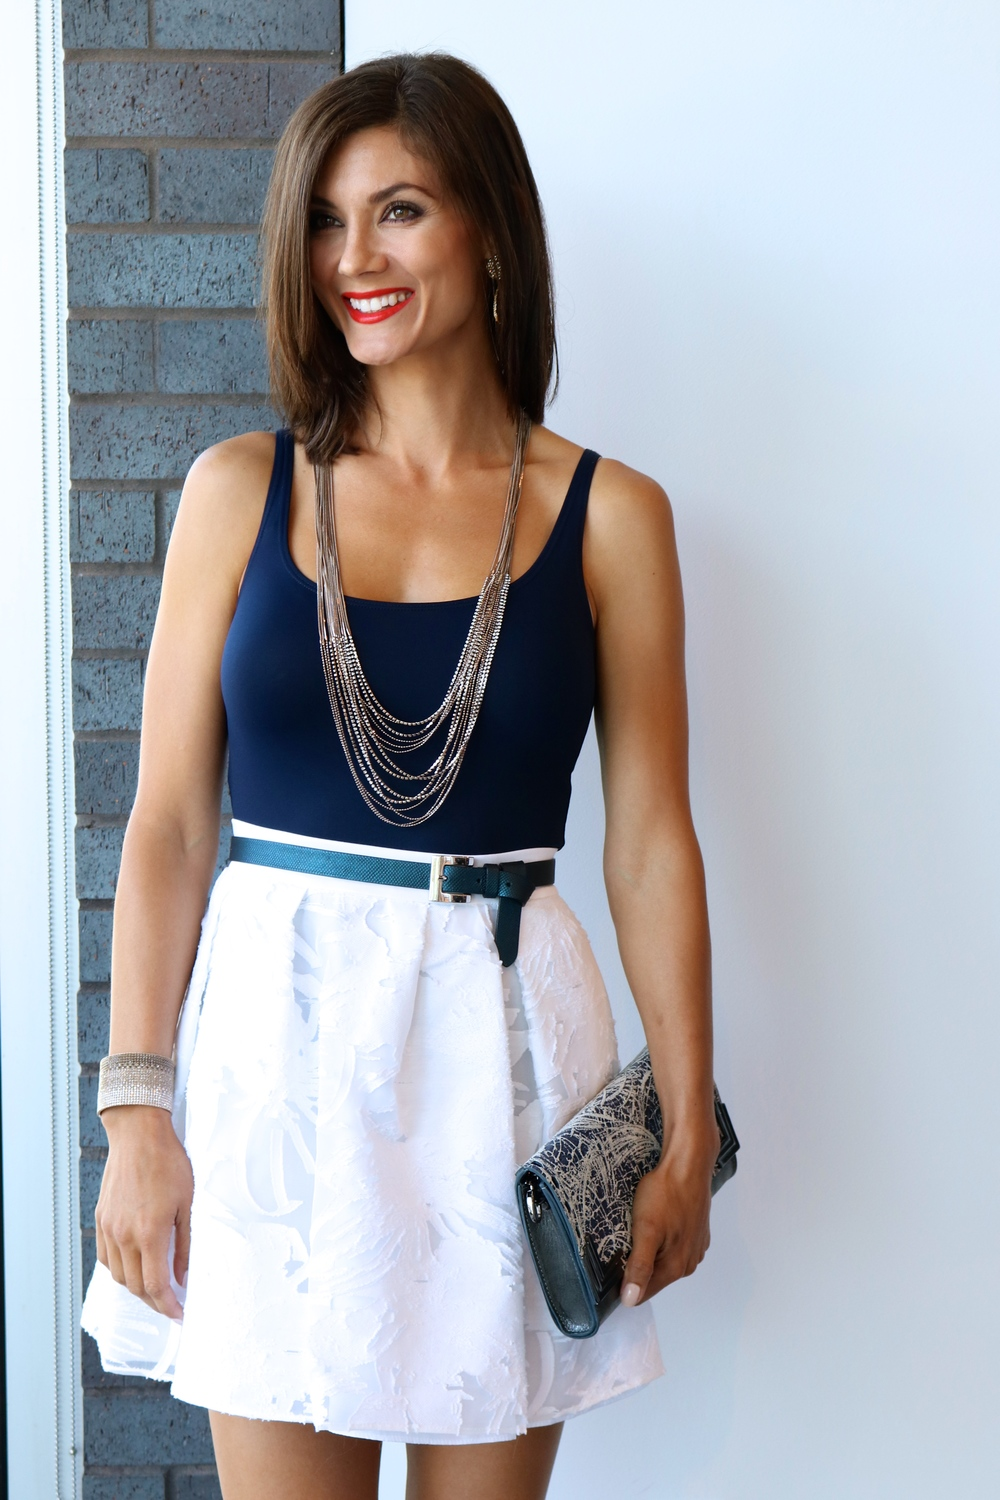 Only Hearts tank in navy, Waldrip NYC skirt, and accessories are all available in-store.